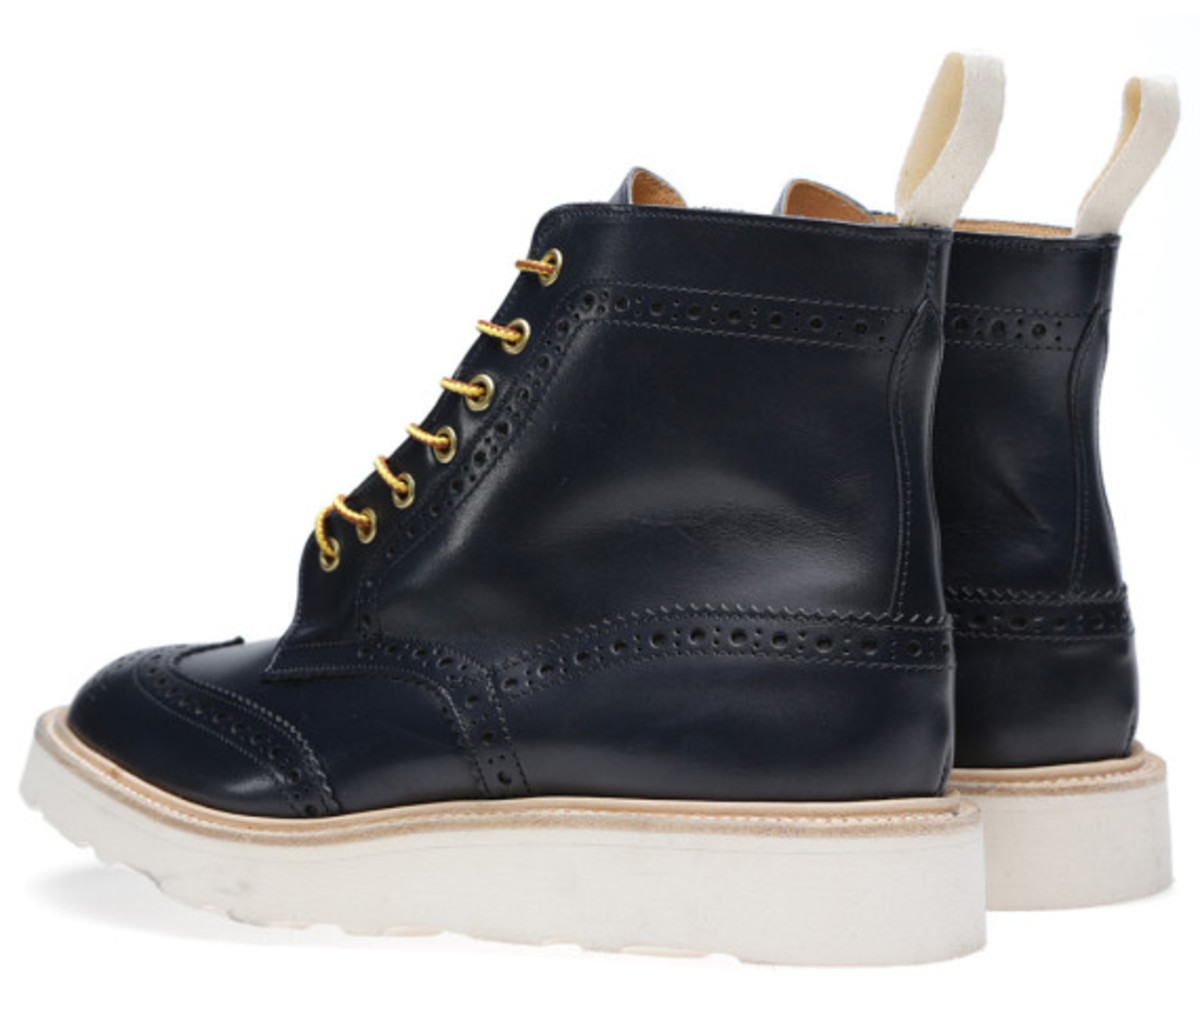 end-trickers-vibram-sole-stow-boot-33